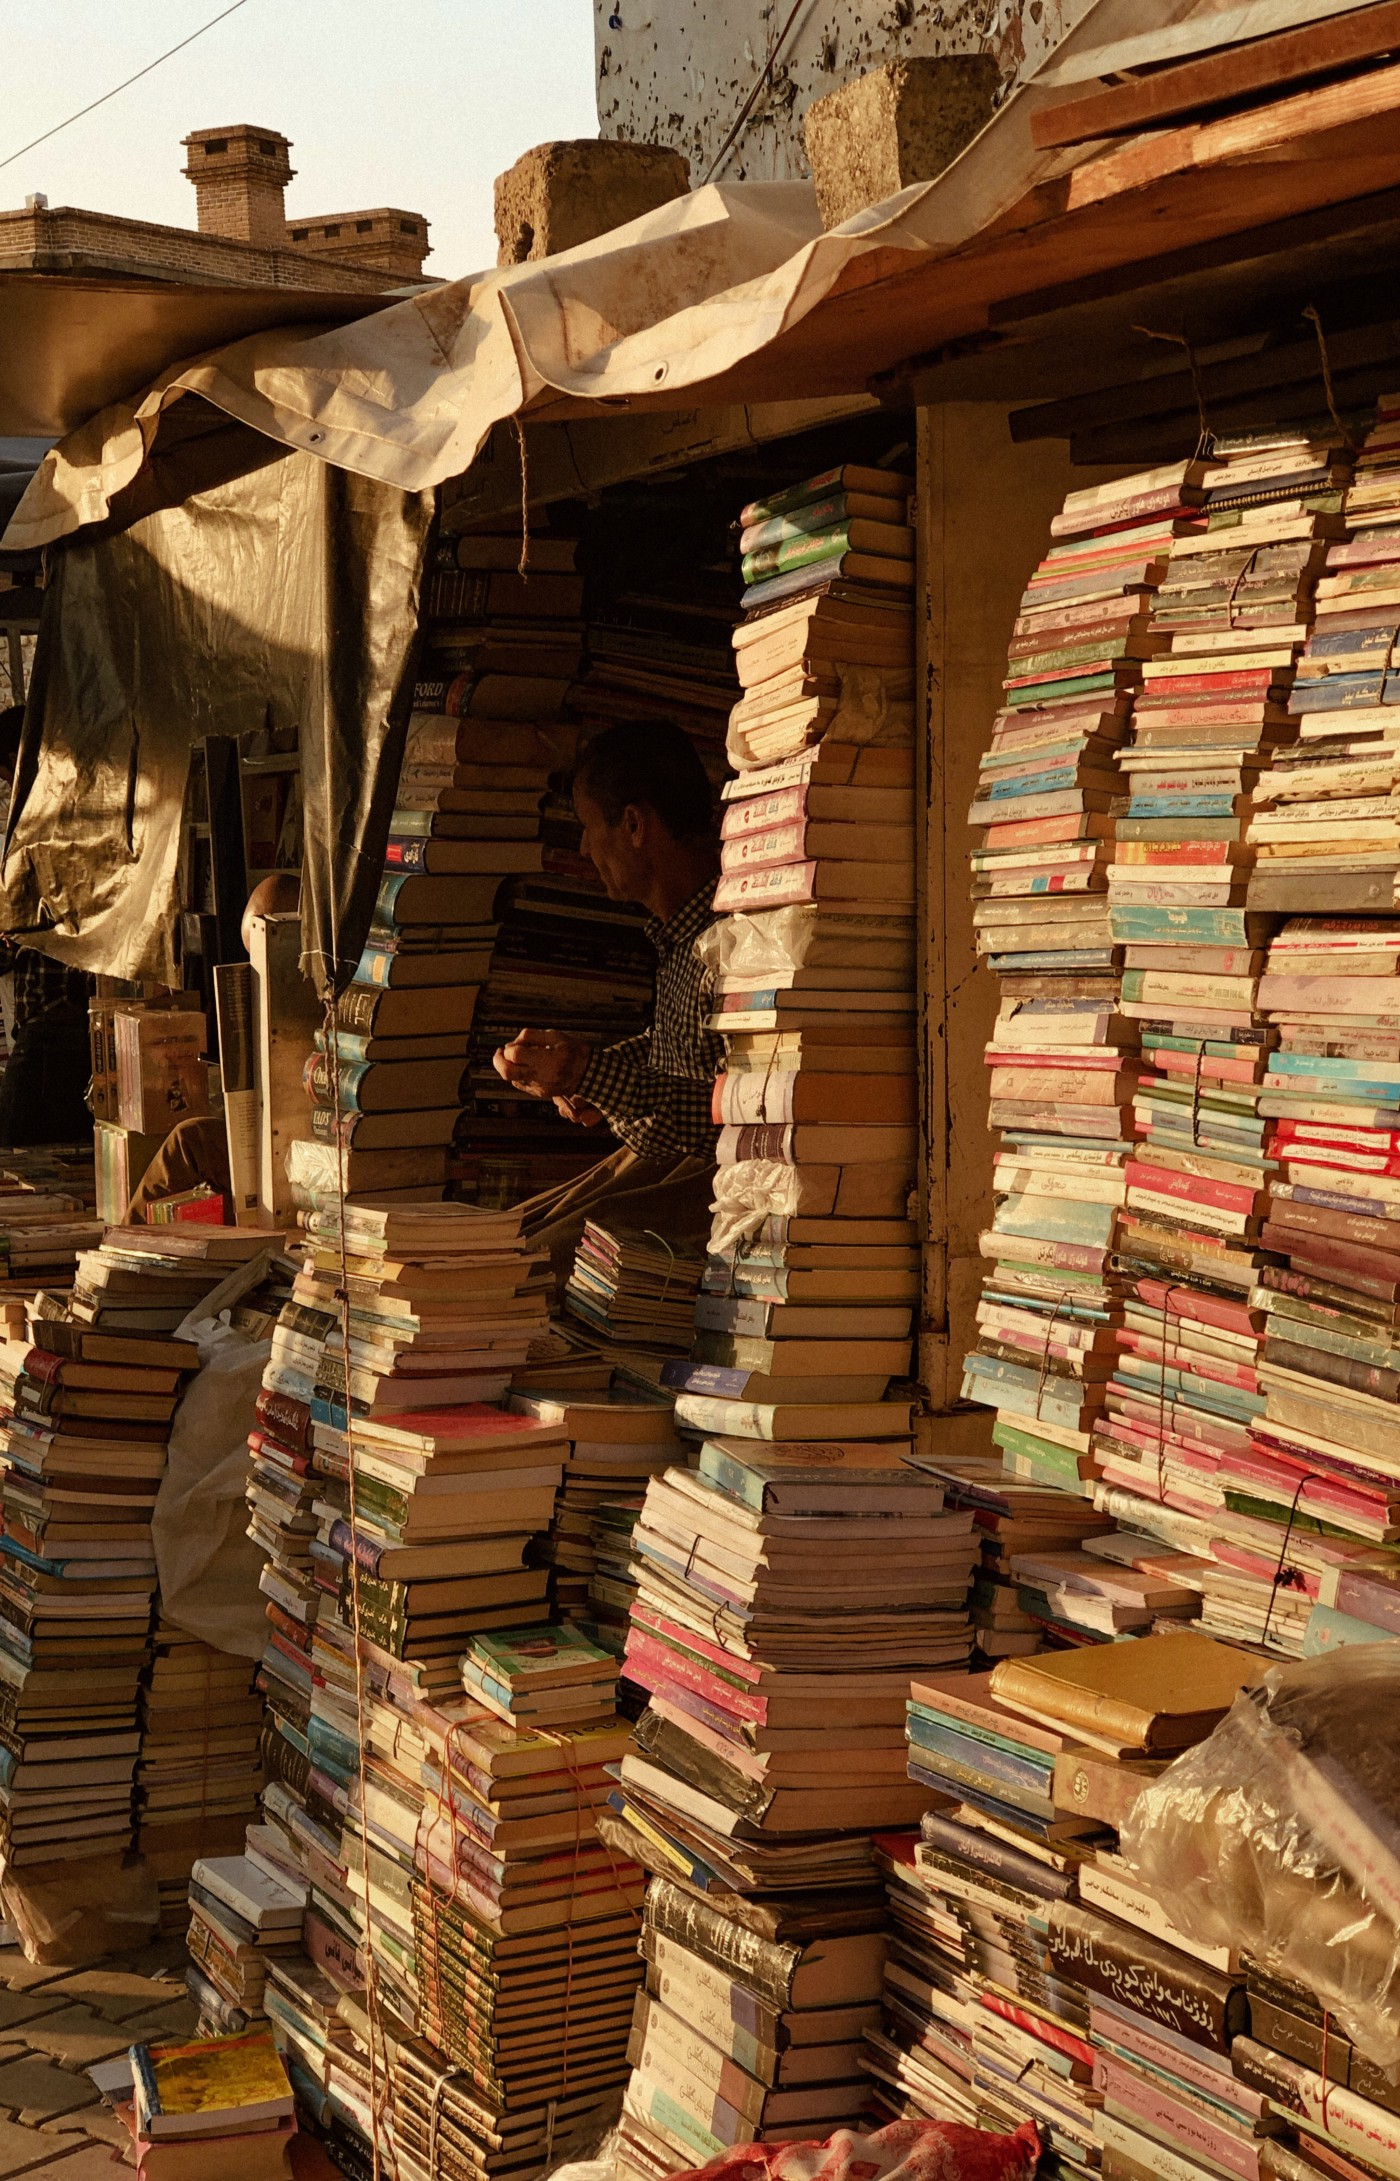 Books stacked high in modern-day Iraq